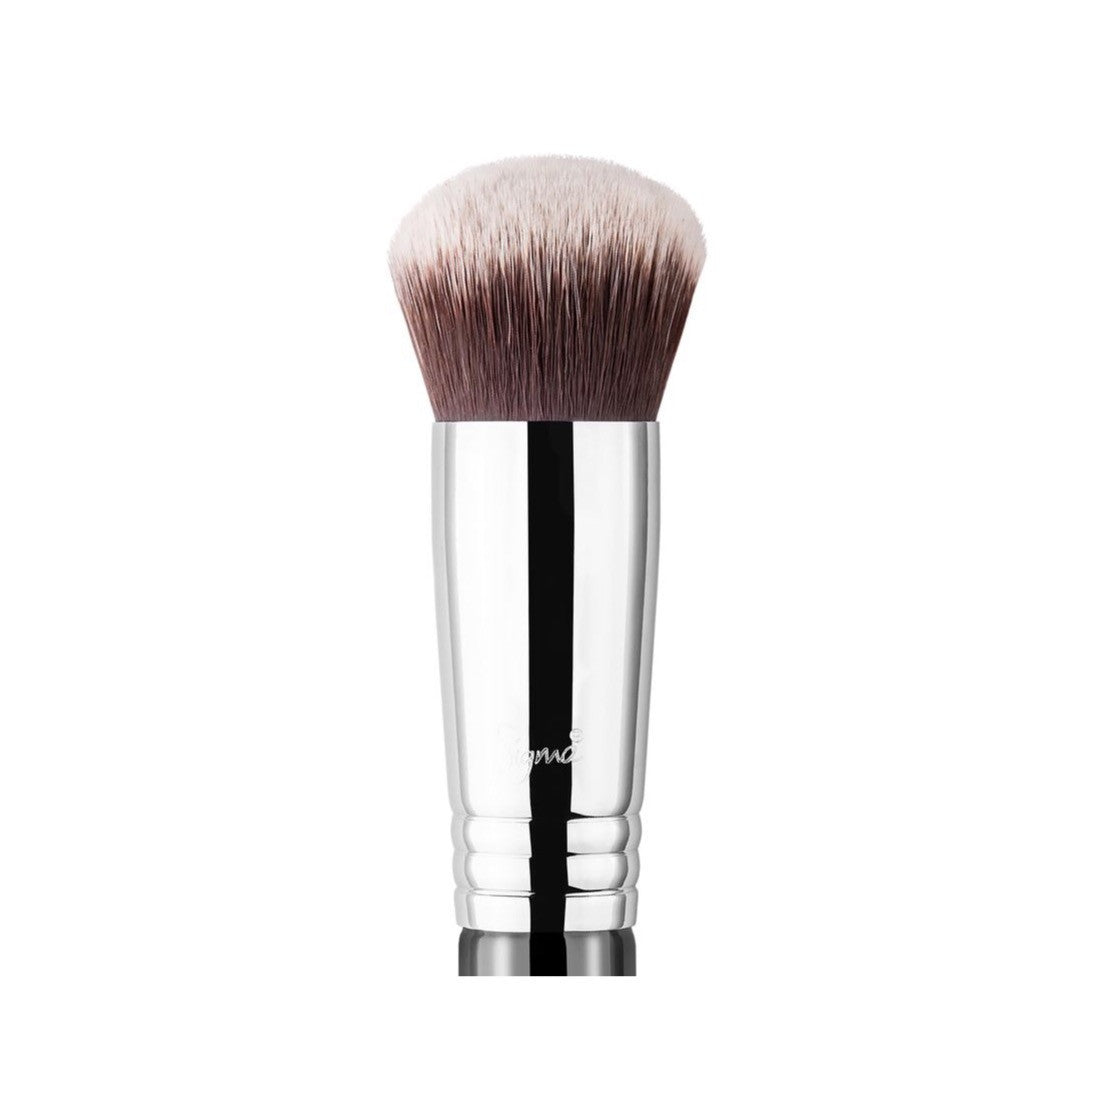 Tools & Brushes - F82 - Round Kabuki™ Brush